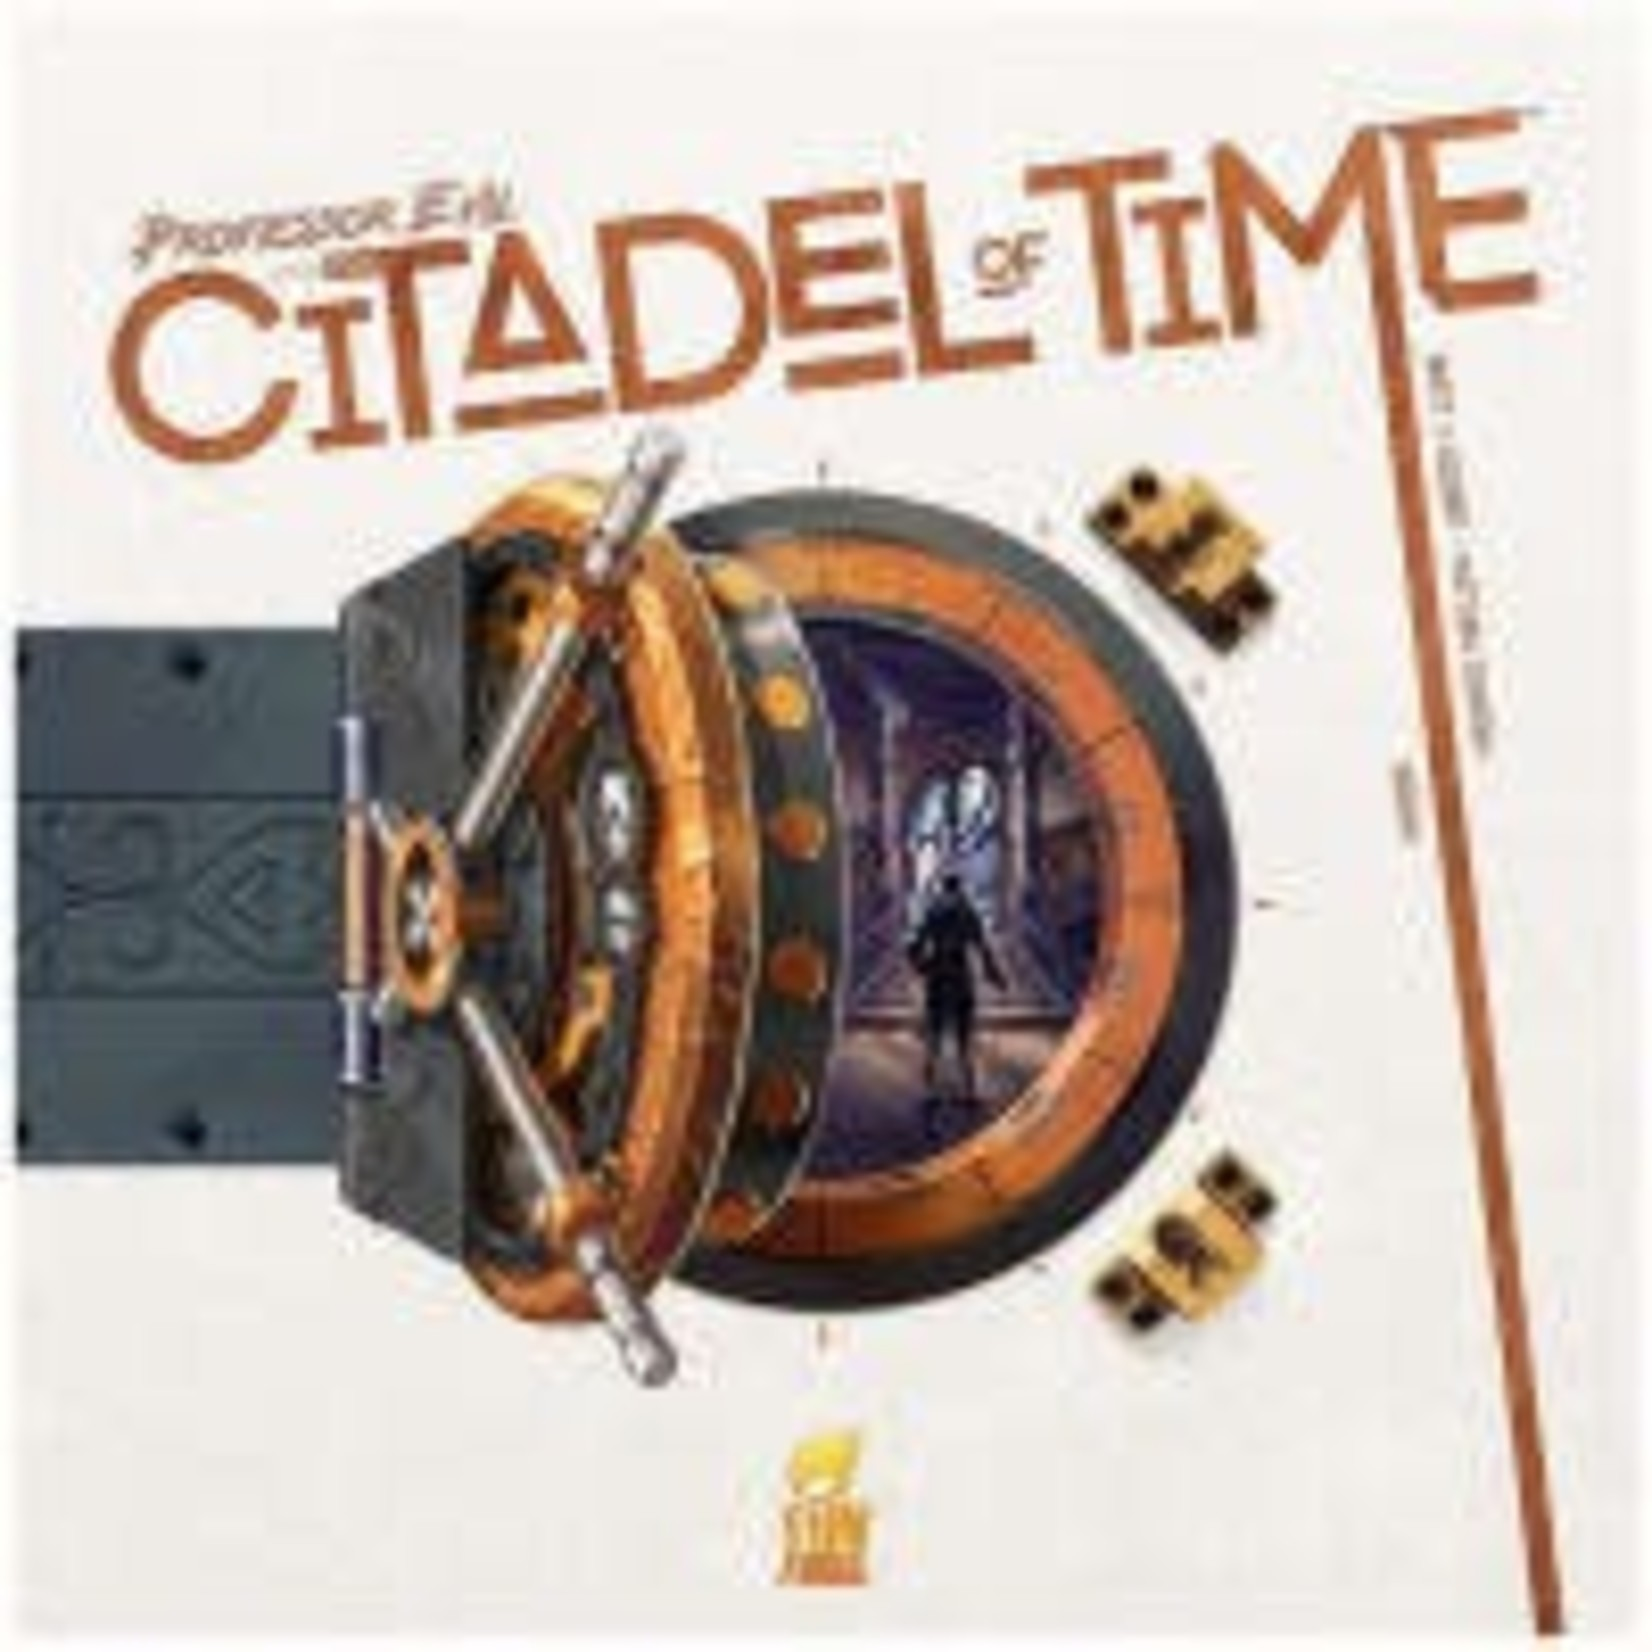 Passport Games Professor Evil and the Citadel of Time